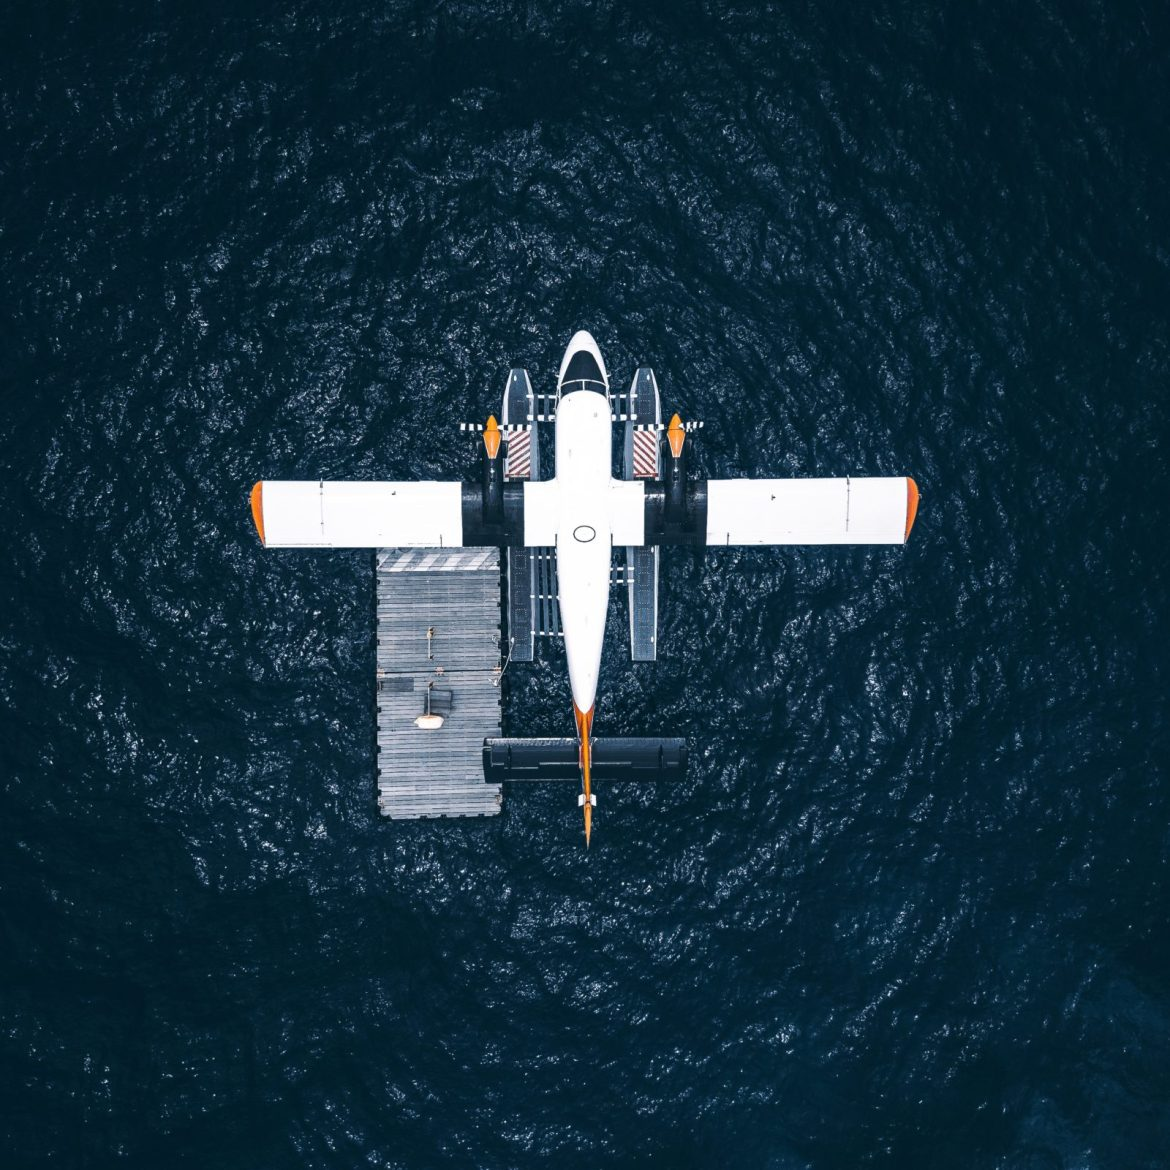 twin otter on floats